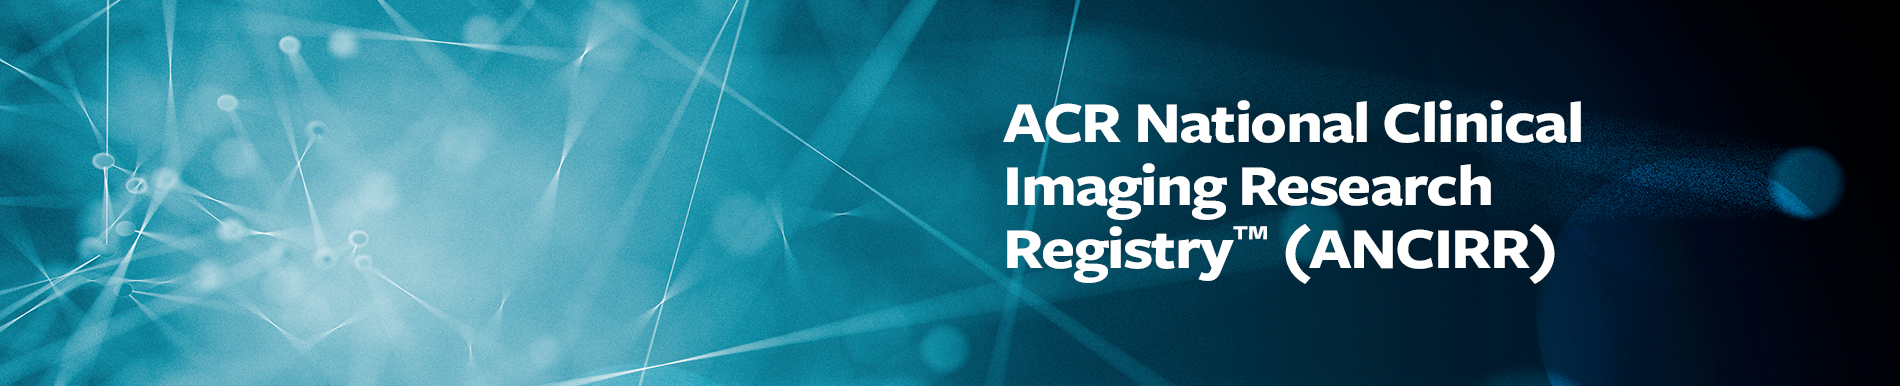 ACR National Clinical Imaging Research Registry™ (ANCIRR)